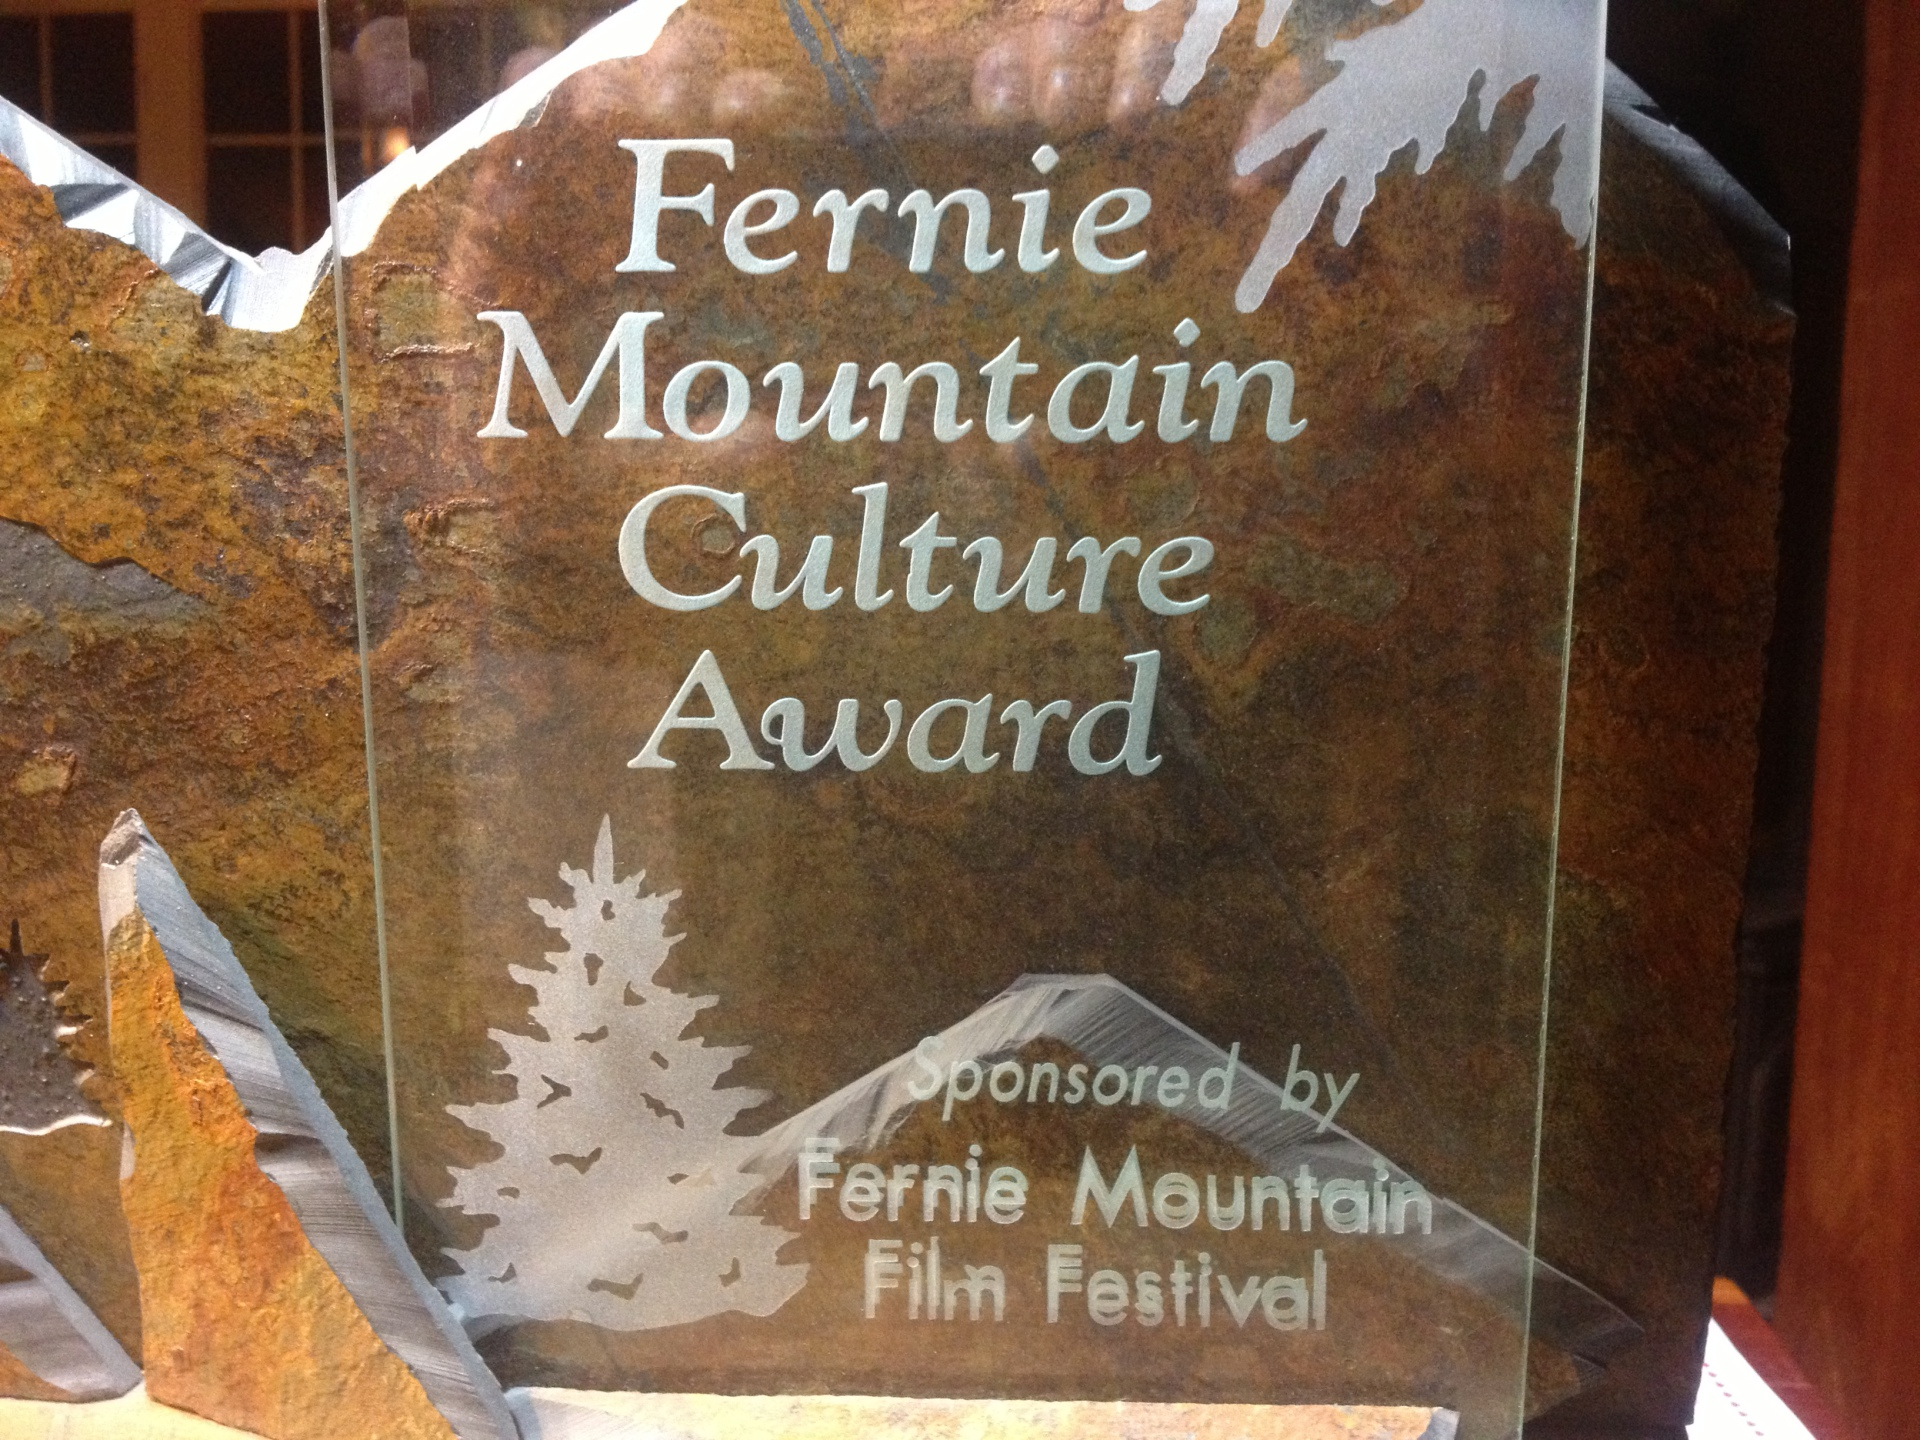 Fernie Mountain Culture Award